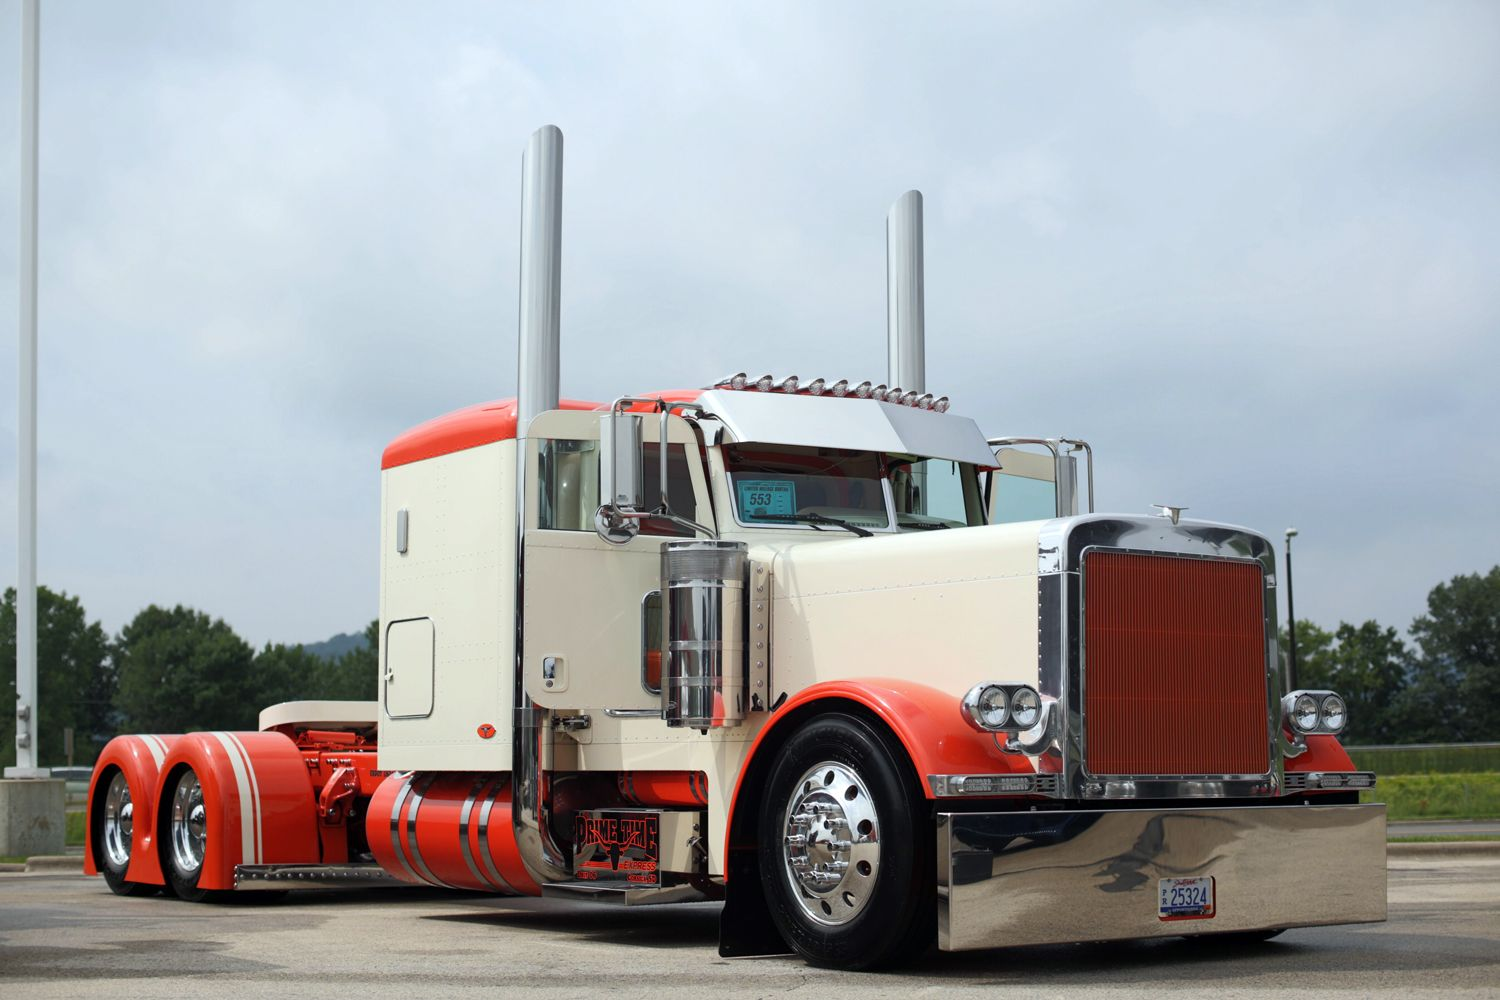 Peterbilt dump truck custom show trucks truk strength beauty and chrome pinterest peterbilt dump trucks peterbilt and dump trucks